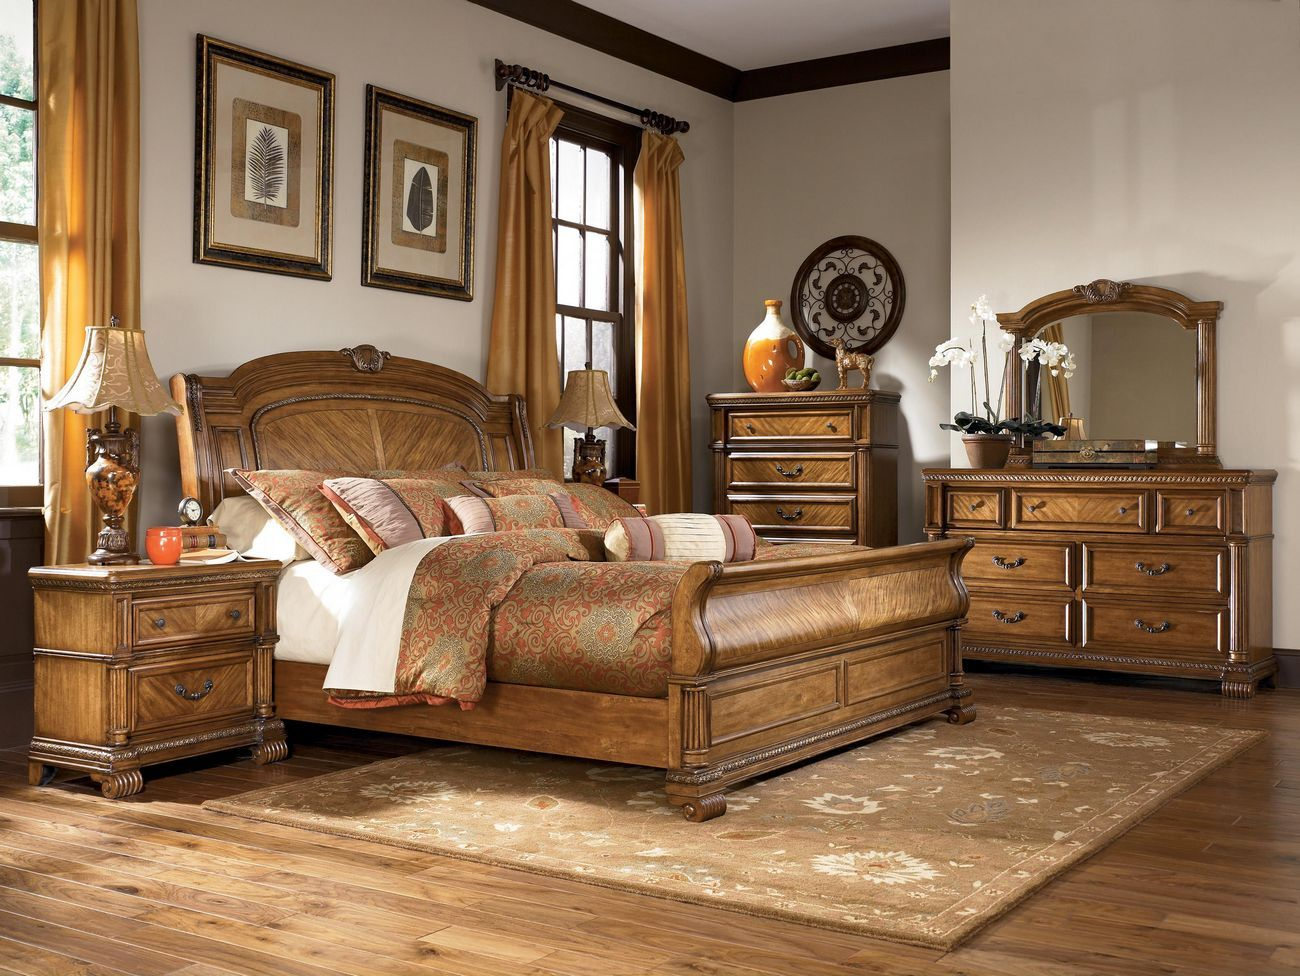 Ashley millennium clearwater b680 king sleigh bedroom - King size sleigh bed bedroom set ...